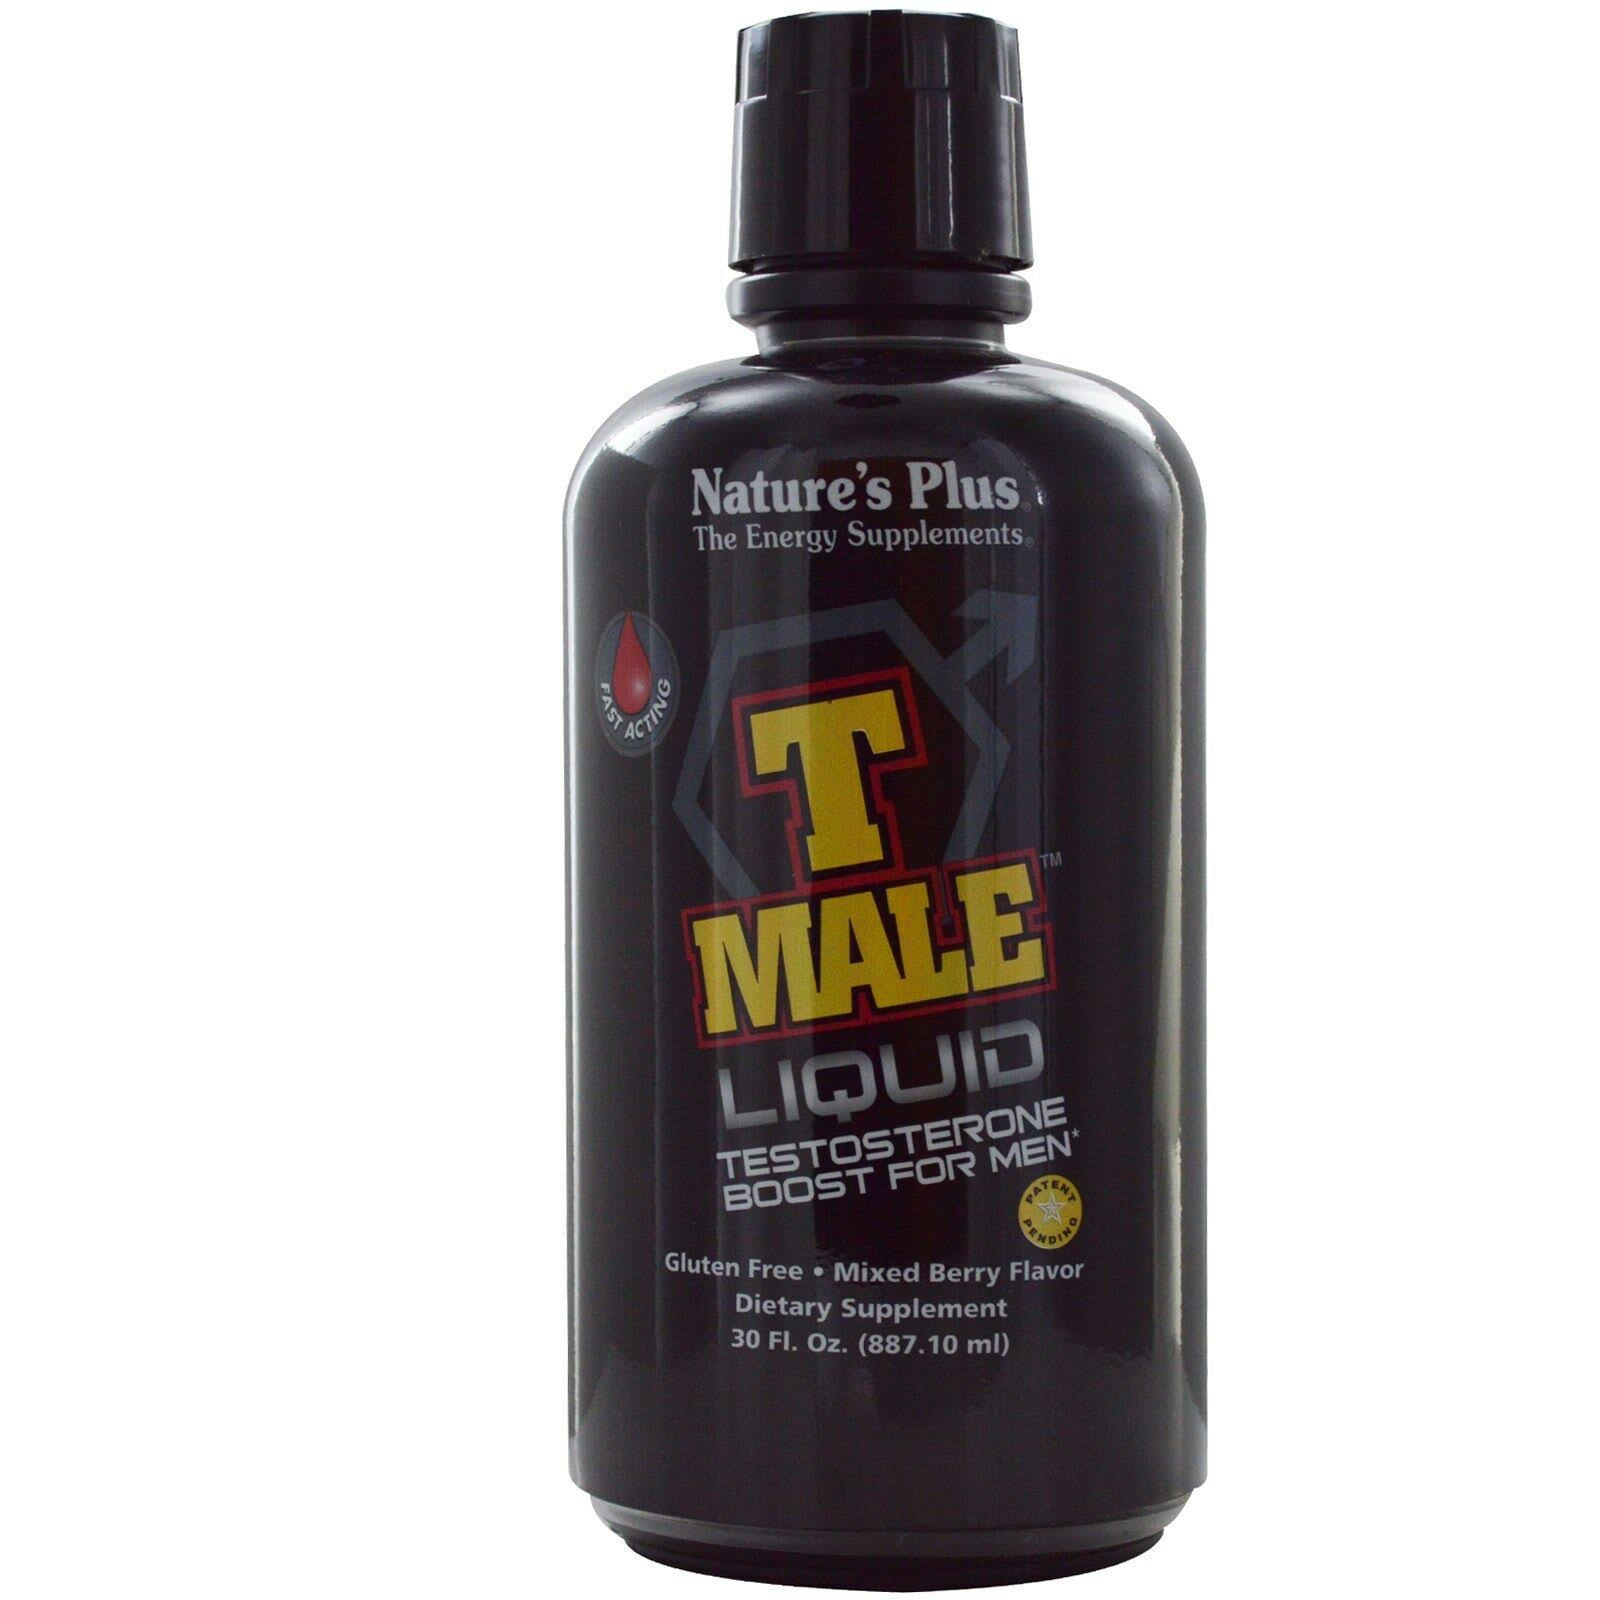 Nature's Plus T Male Liquid - Mixed Berry